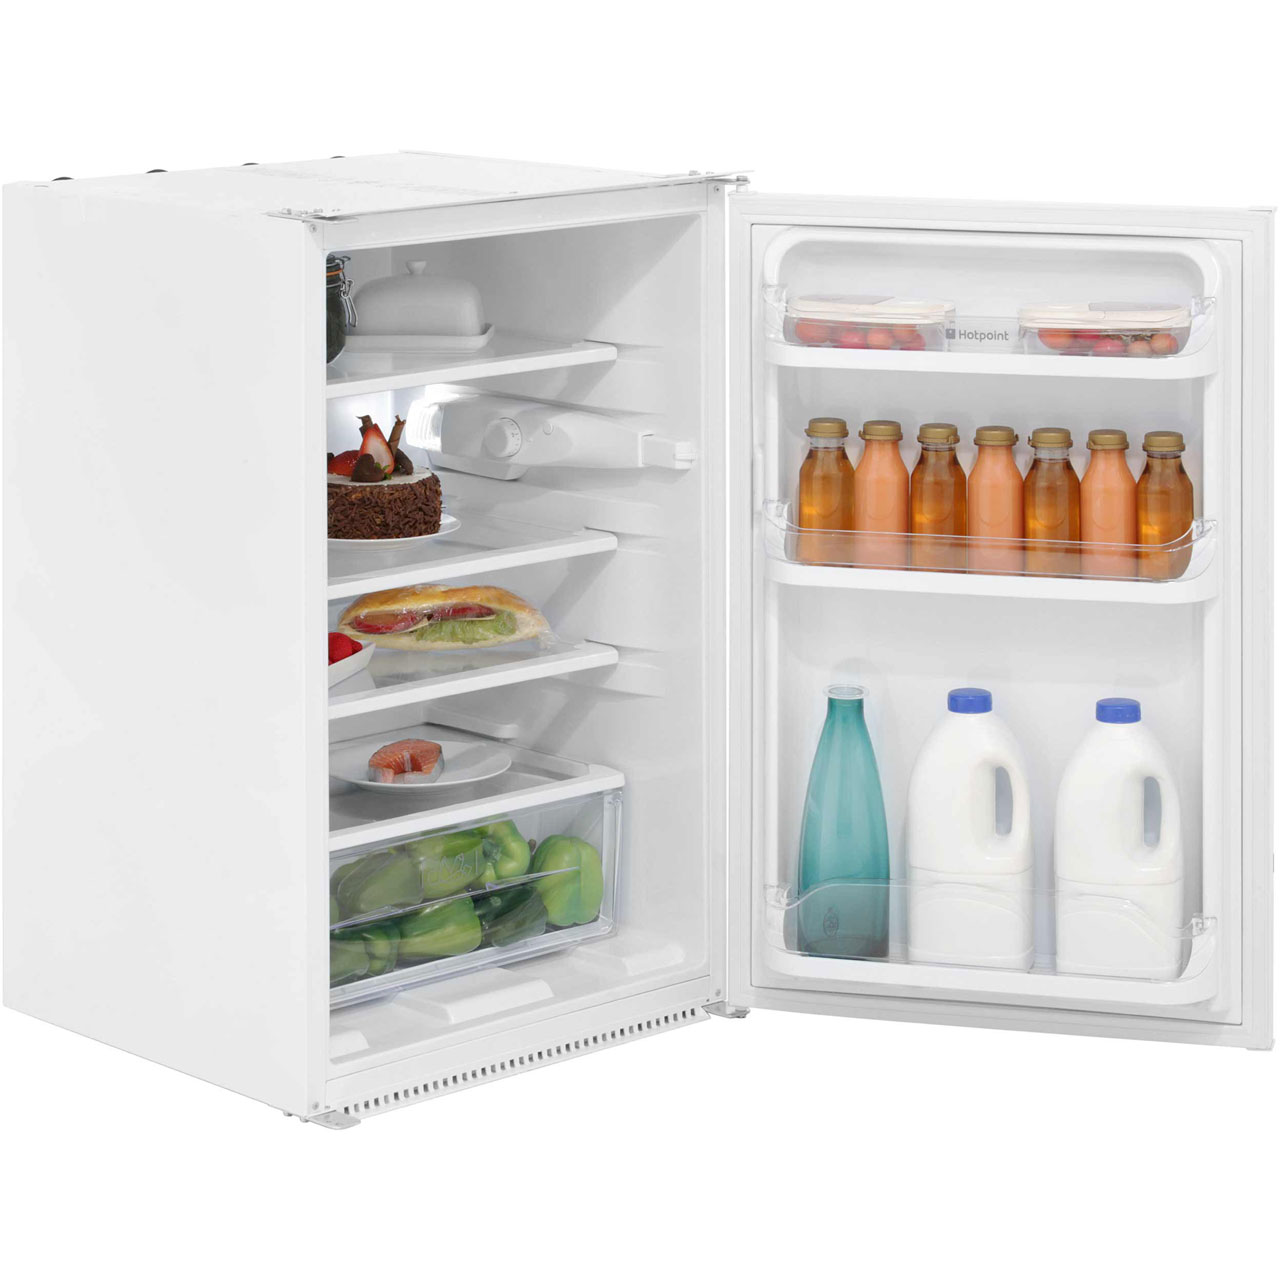 Hotpoint HS1622 Integrated Upright Fridge